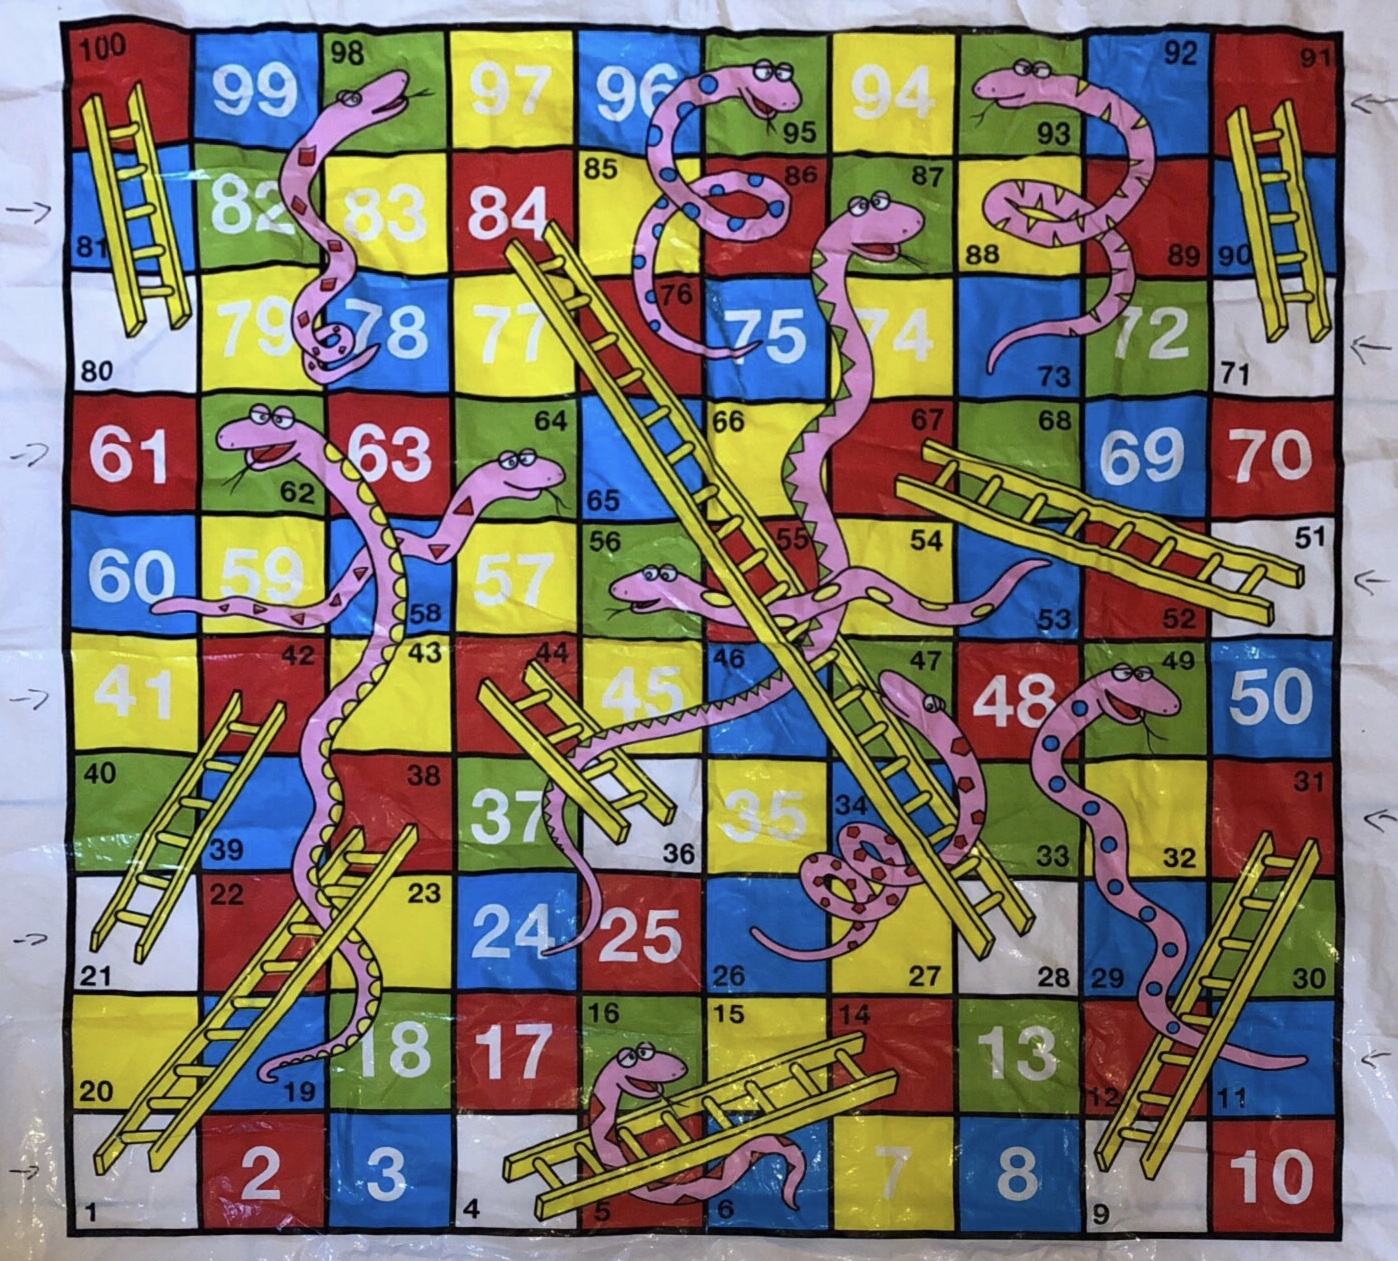 Our Snakes and Ladders Board